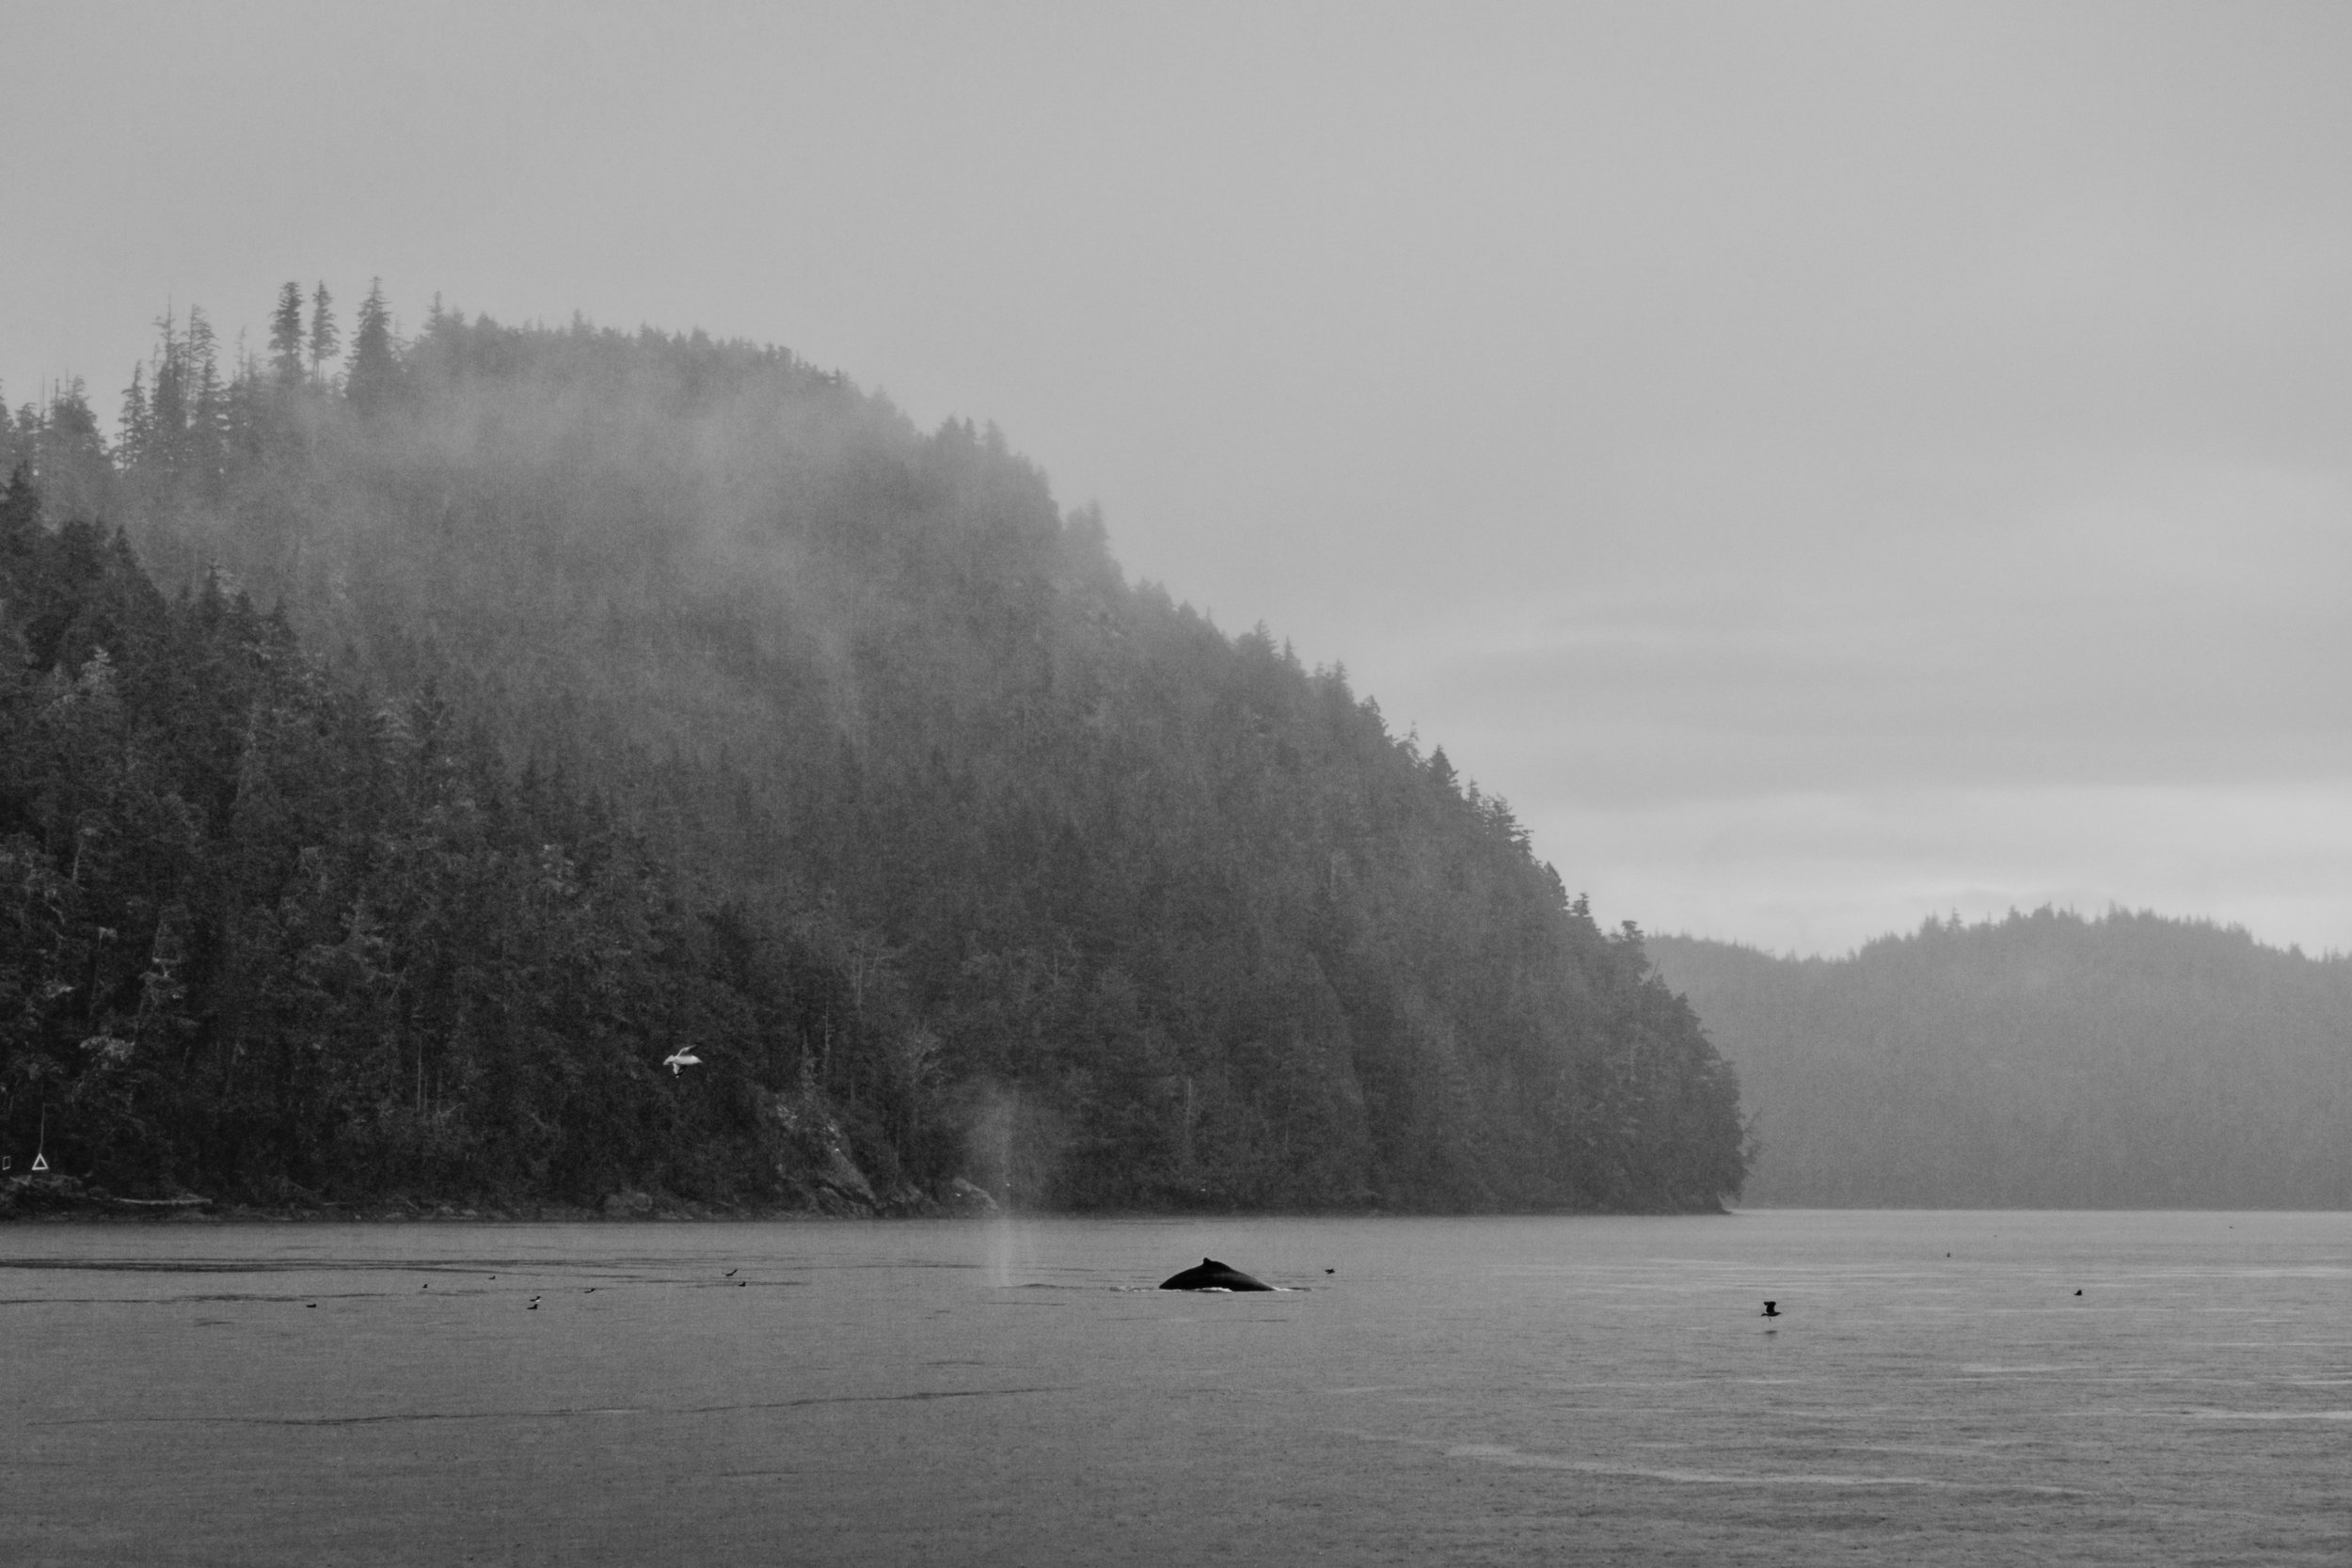 whale-watching-telegraph-cove-00031.jpg